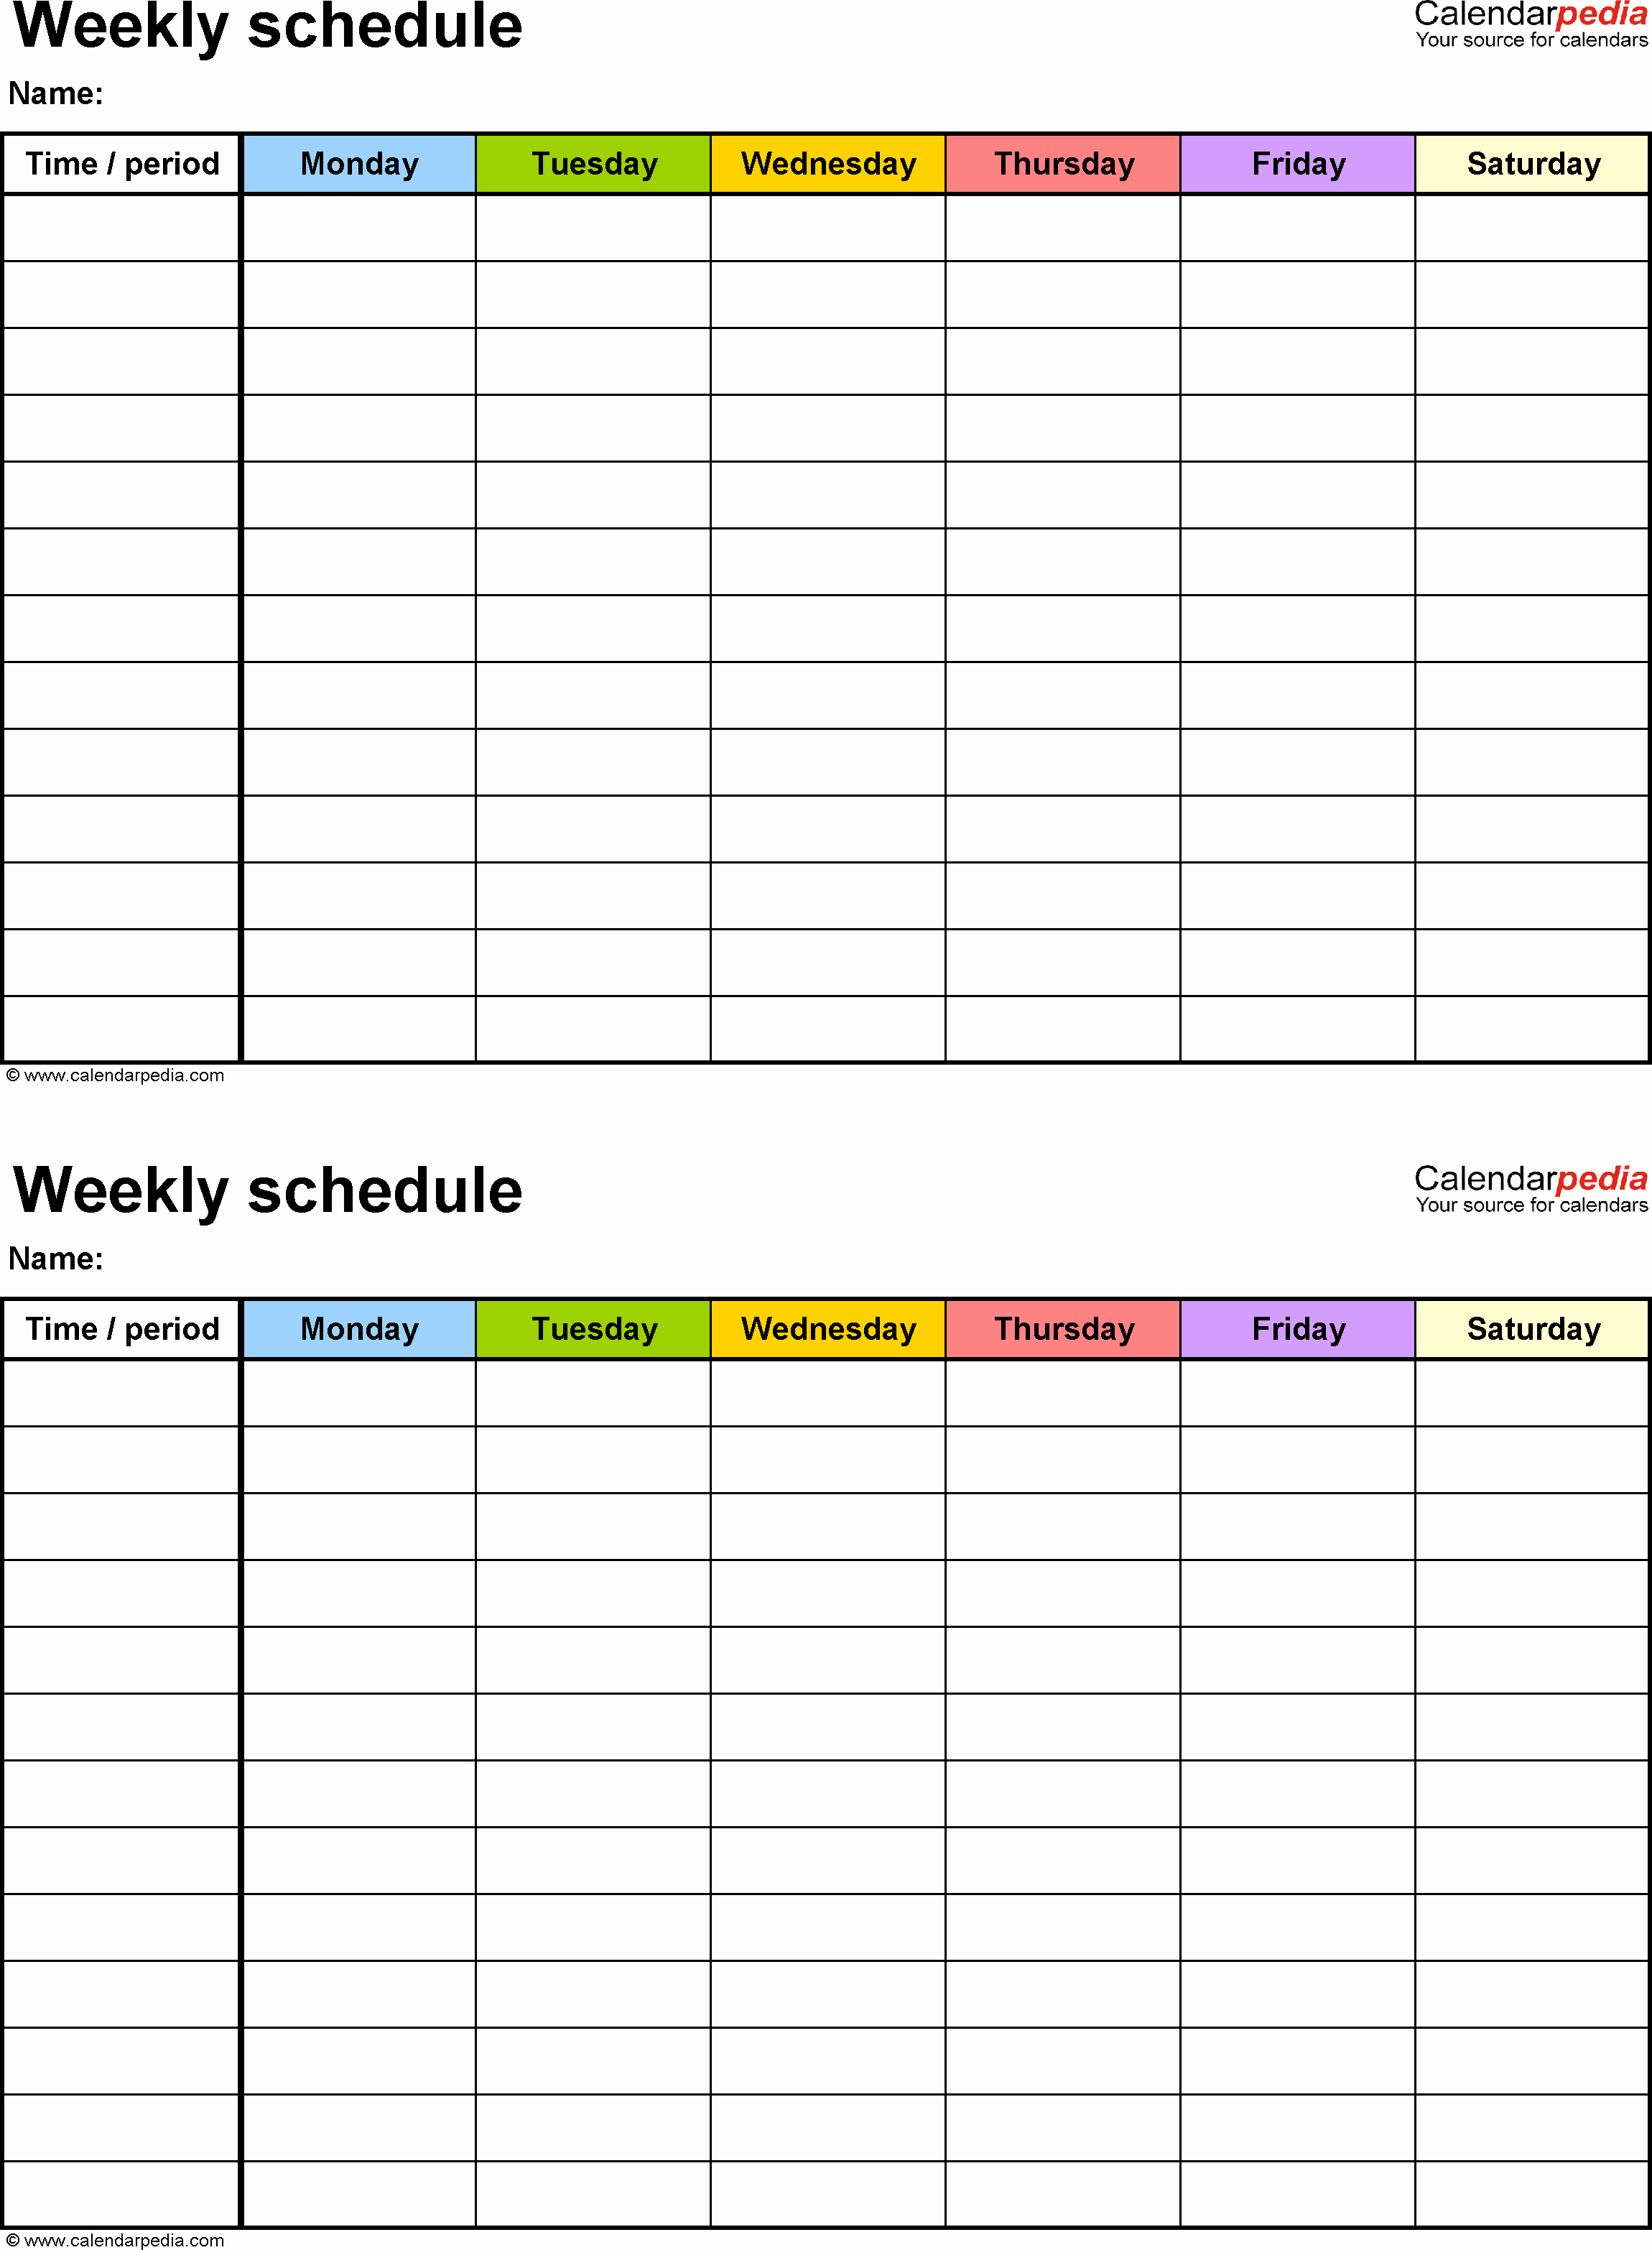 Week Schedule Template Pdf Luxury Free Weekly Schedule Templates for Pdf 18 Templates